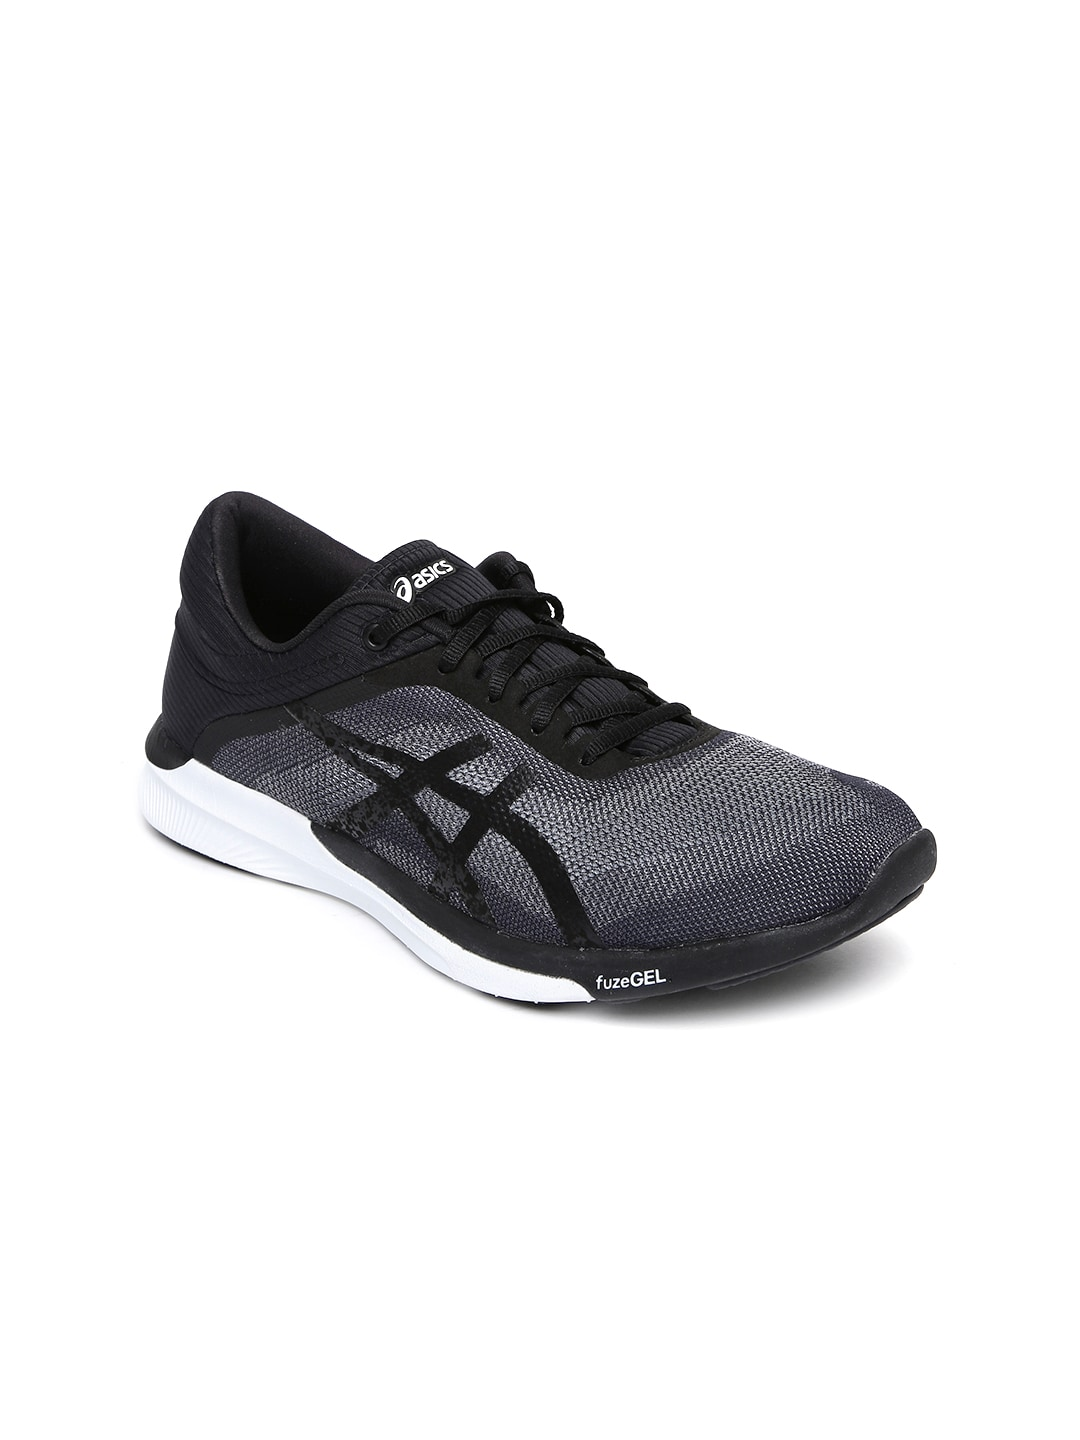 982582182fa6 Asics Women Footwear Sports Shoes - Buy Asics Women Footwear Sports Shoes  online in India